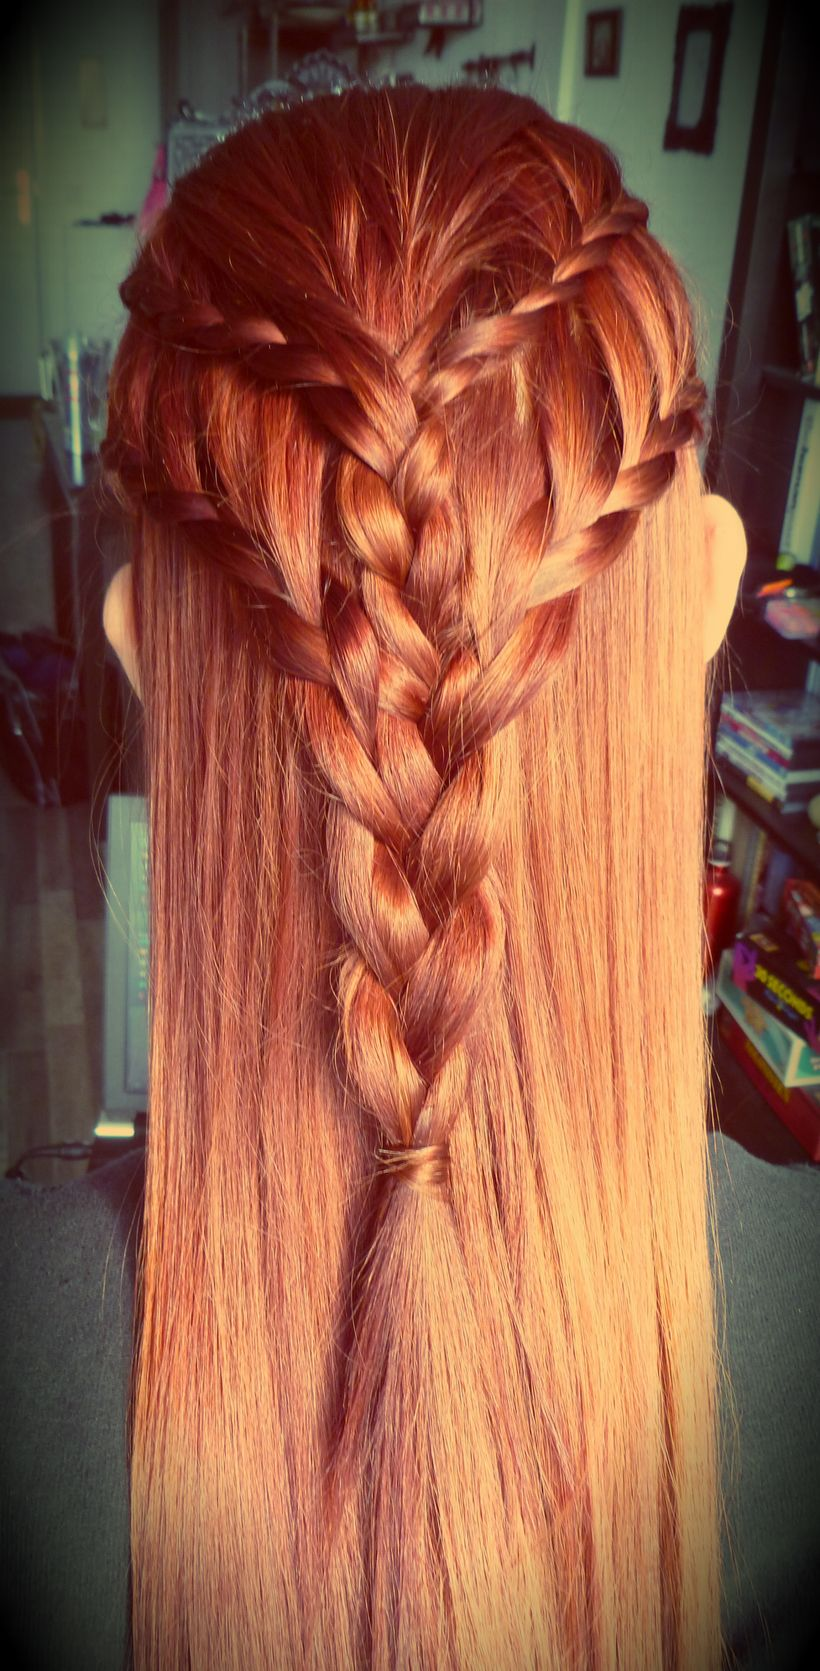 Amazing khaleesi game of thrones hairstyle ideas 34